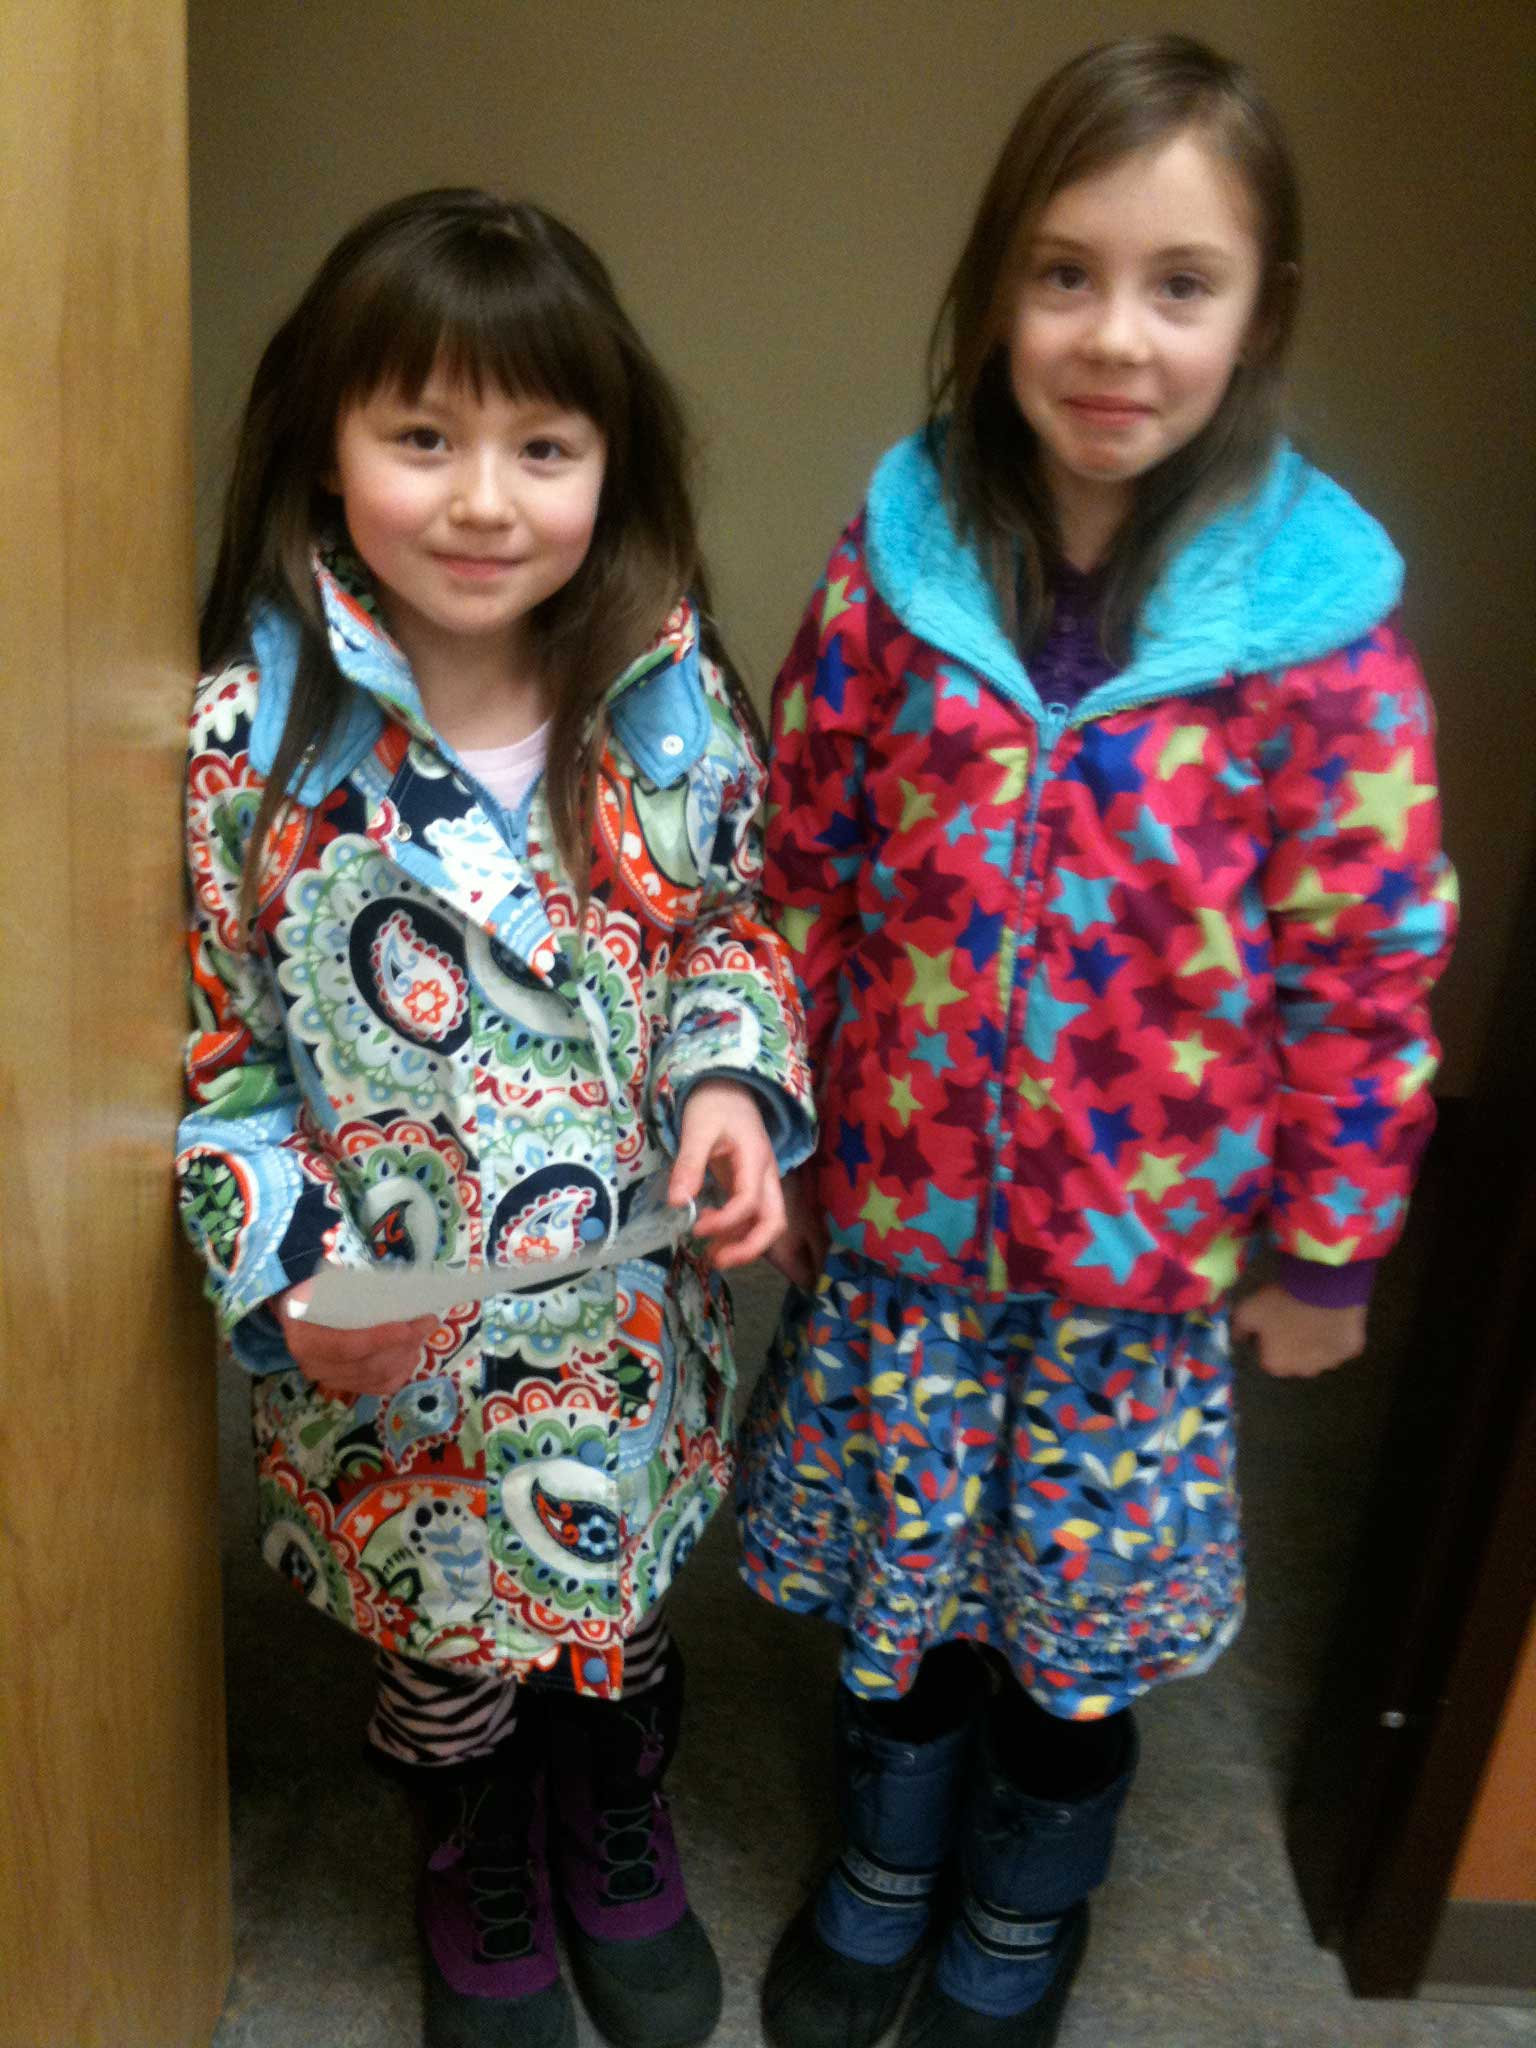 art kids love color and pattern!